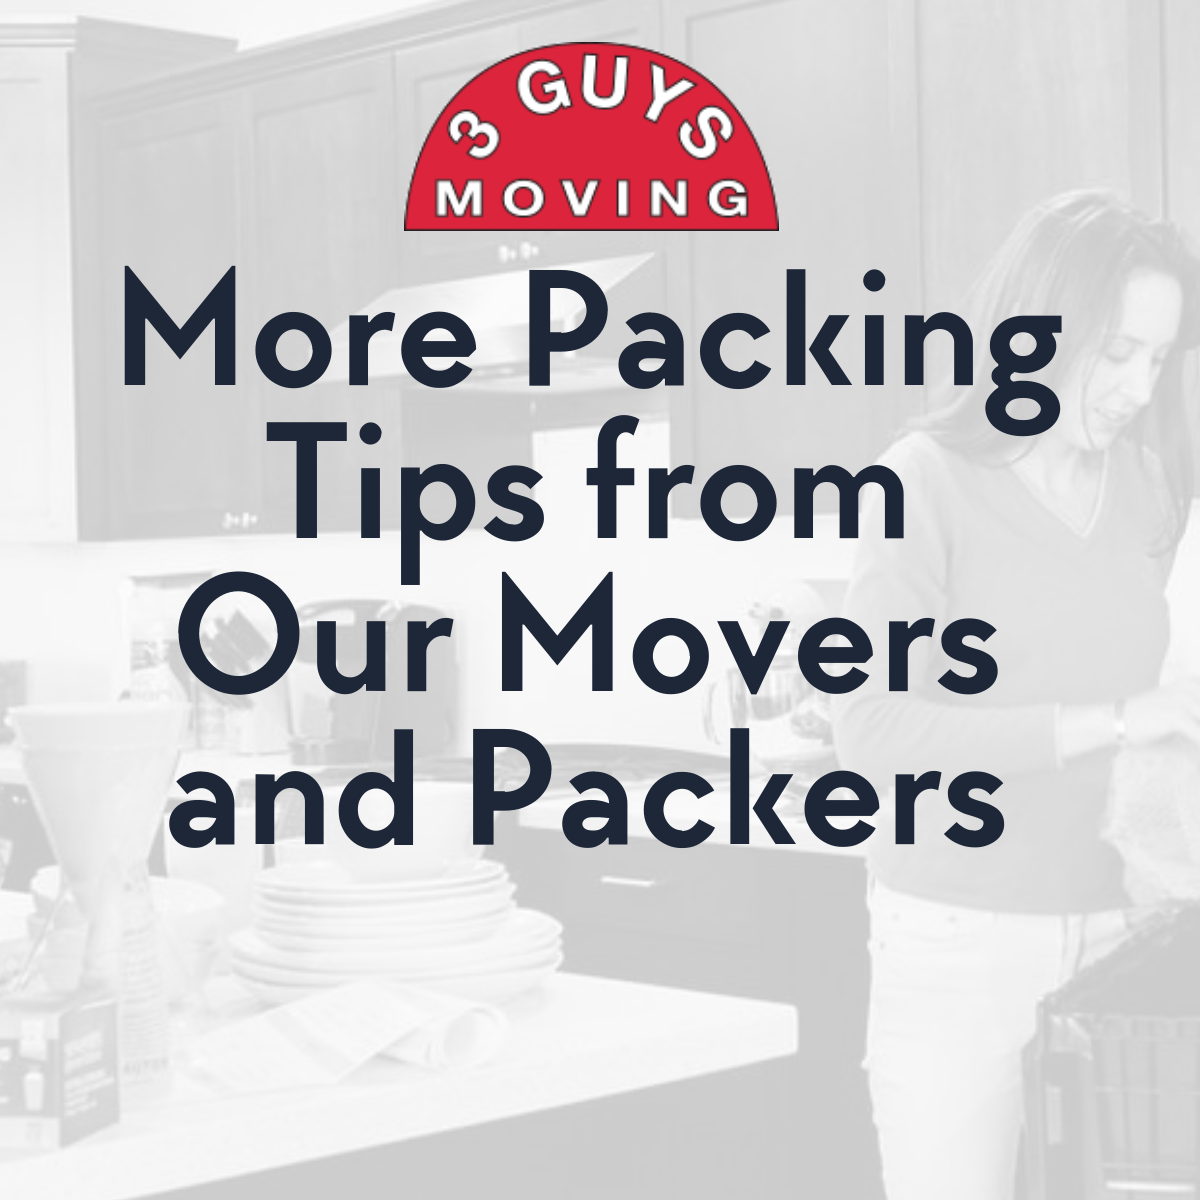 More Packing Tips from Our Movers and Packers - More Packing Tips from Our Movers and Packers